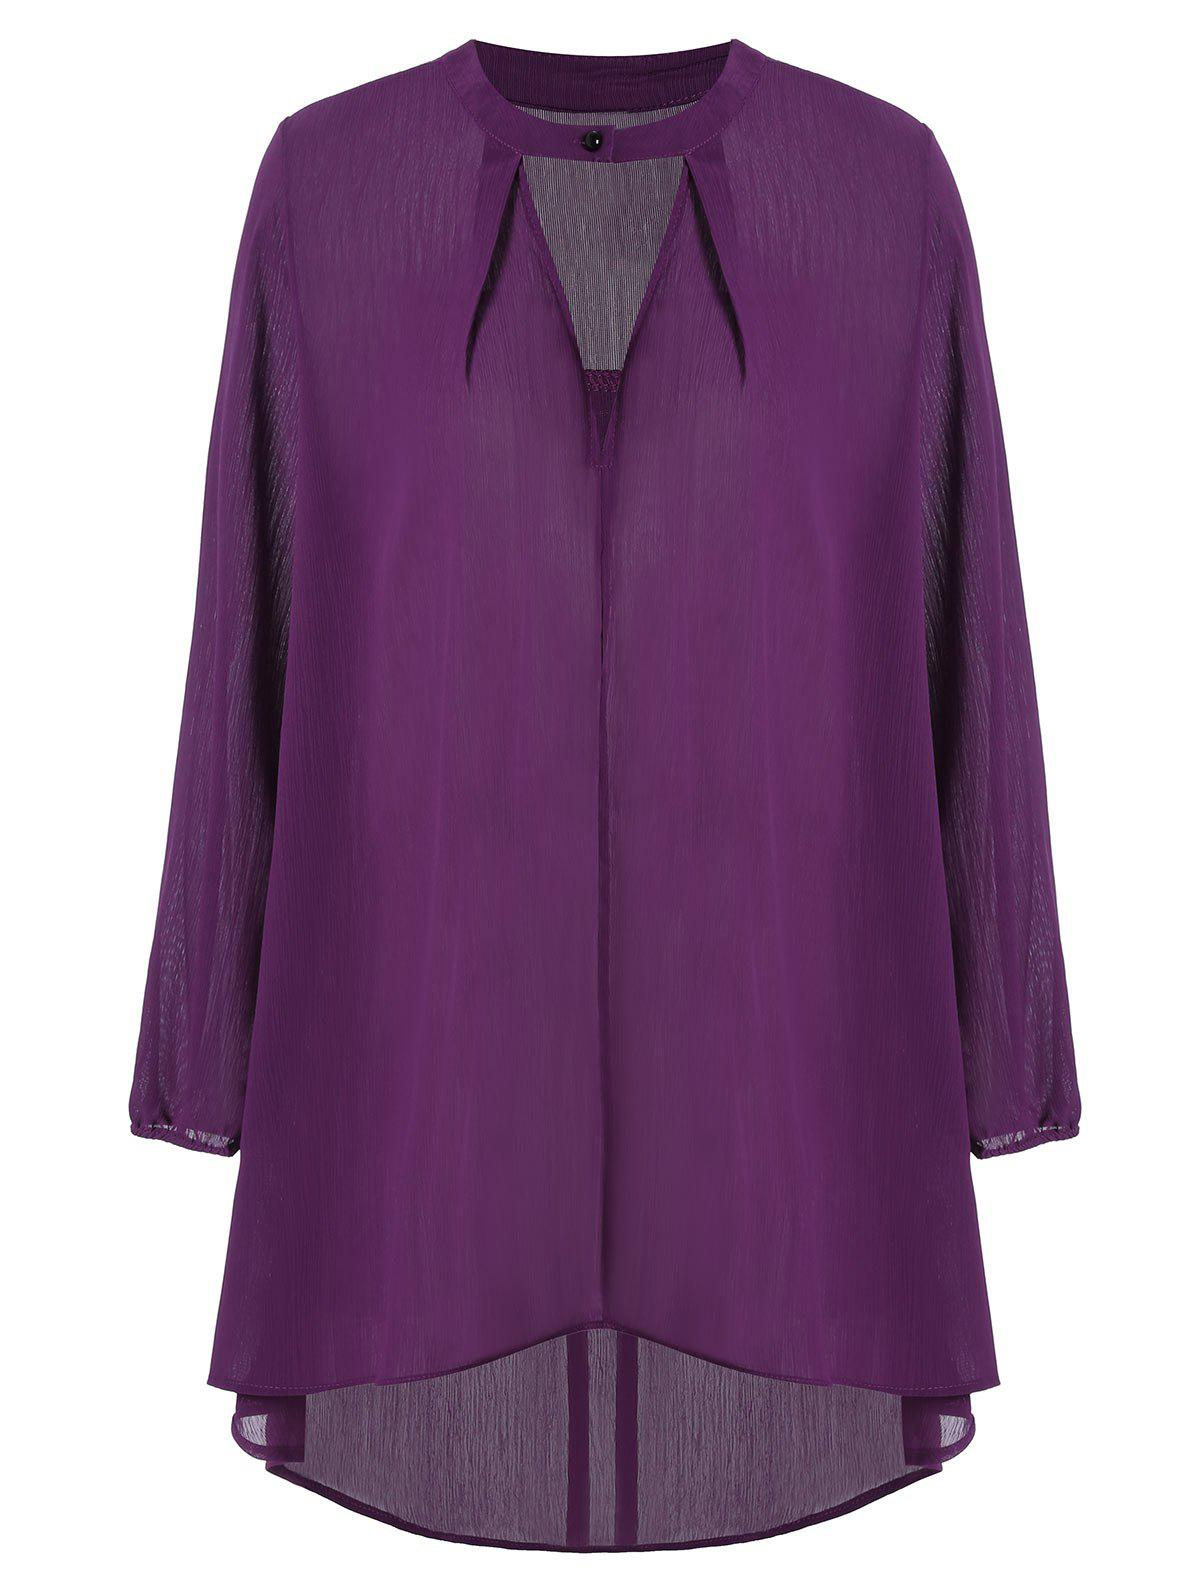 Keyhole Neck Long Sleeve Plus Size High Low Blouse - PURPLISH RED 4XL